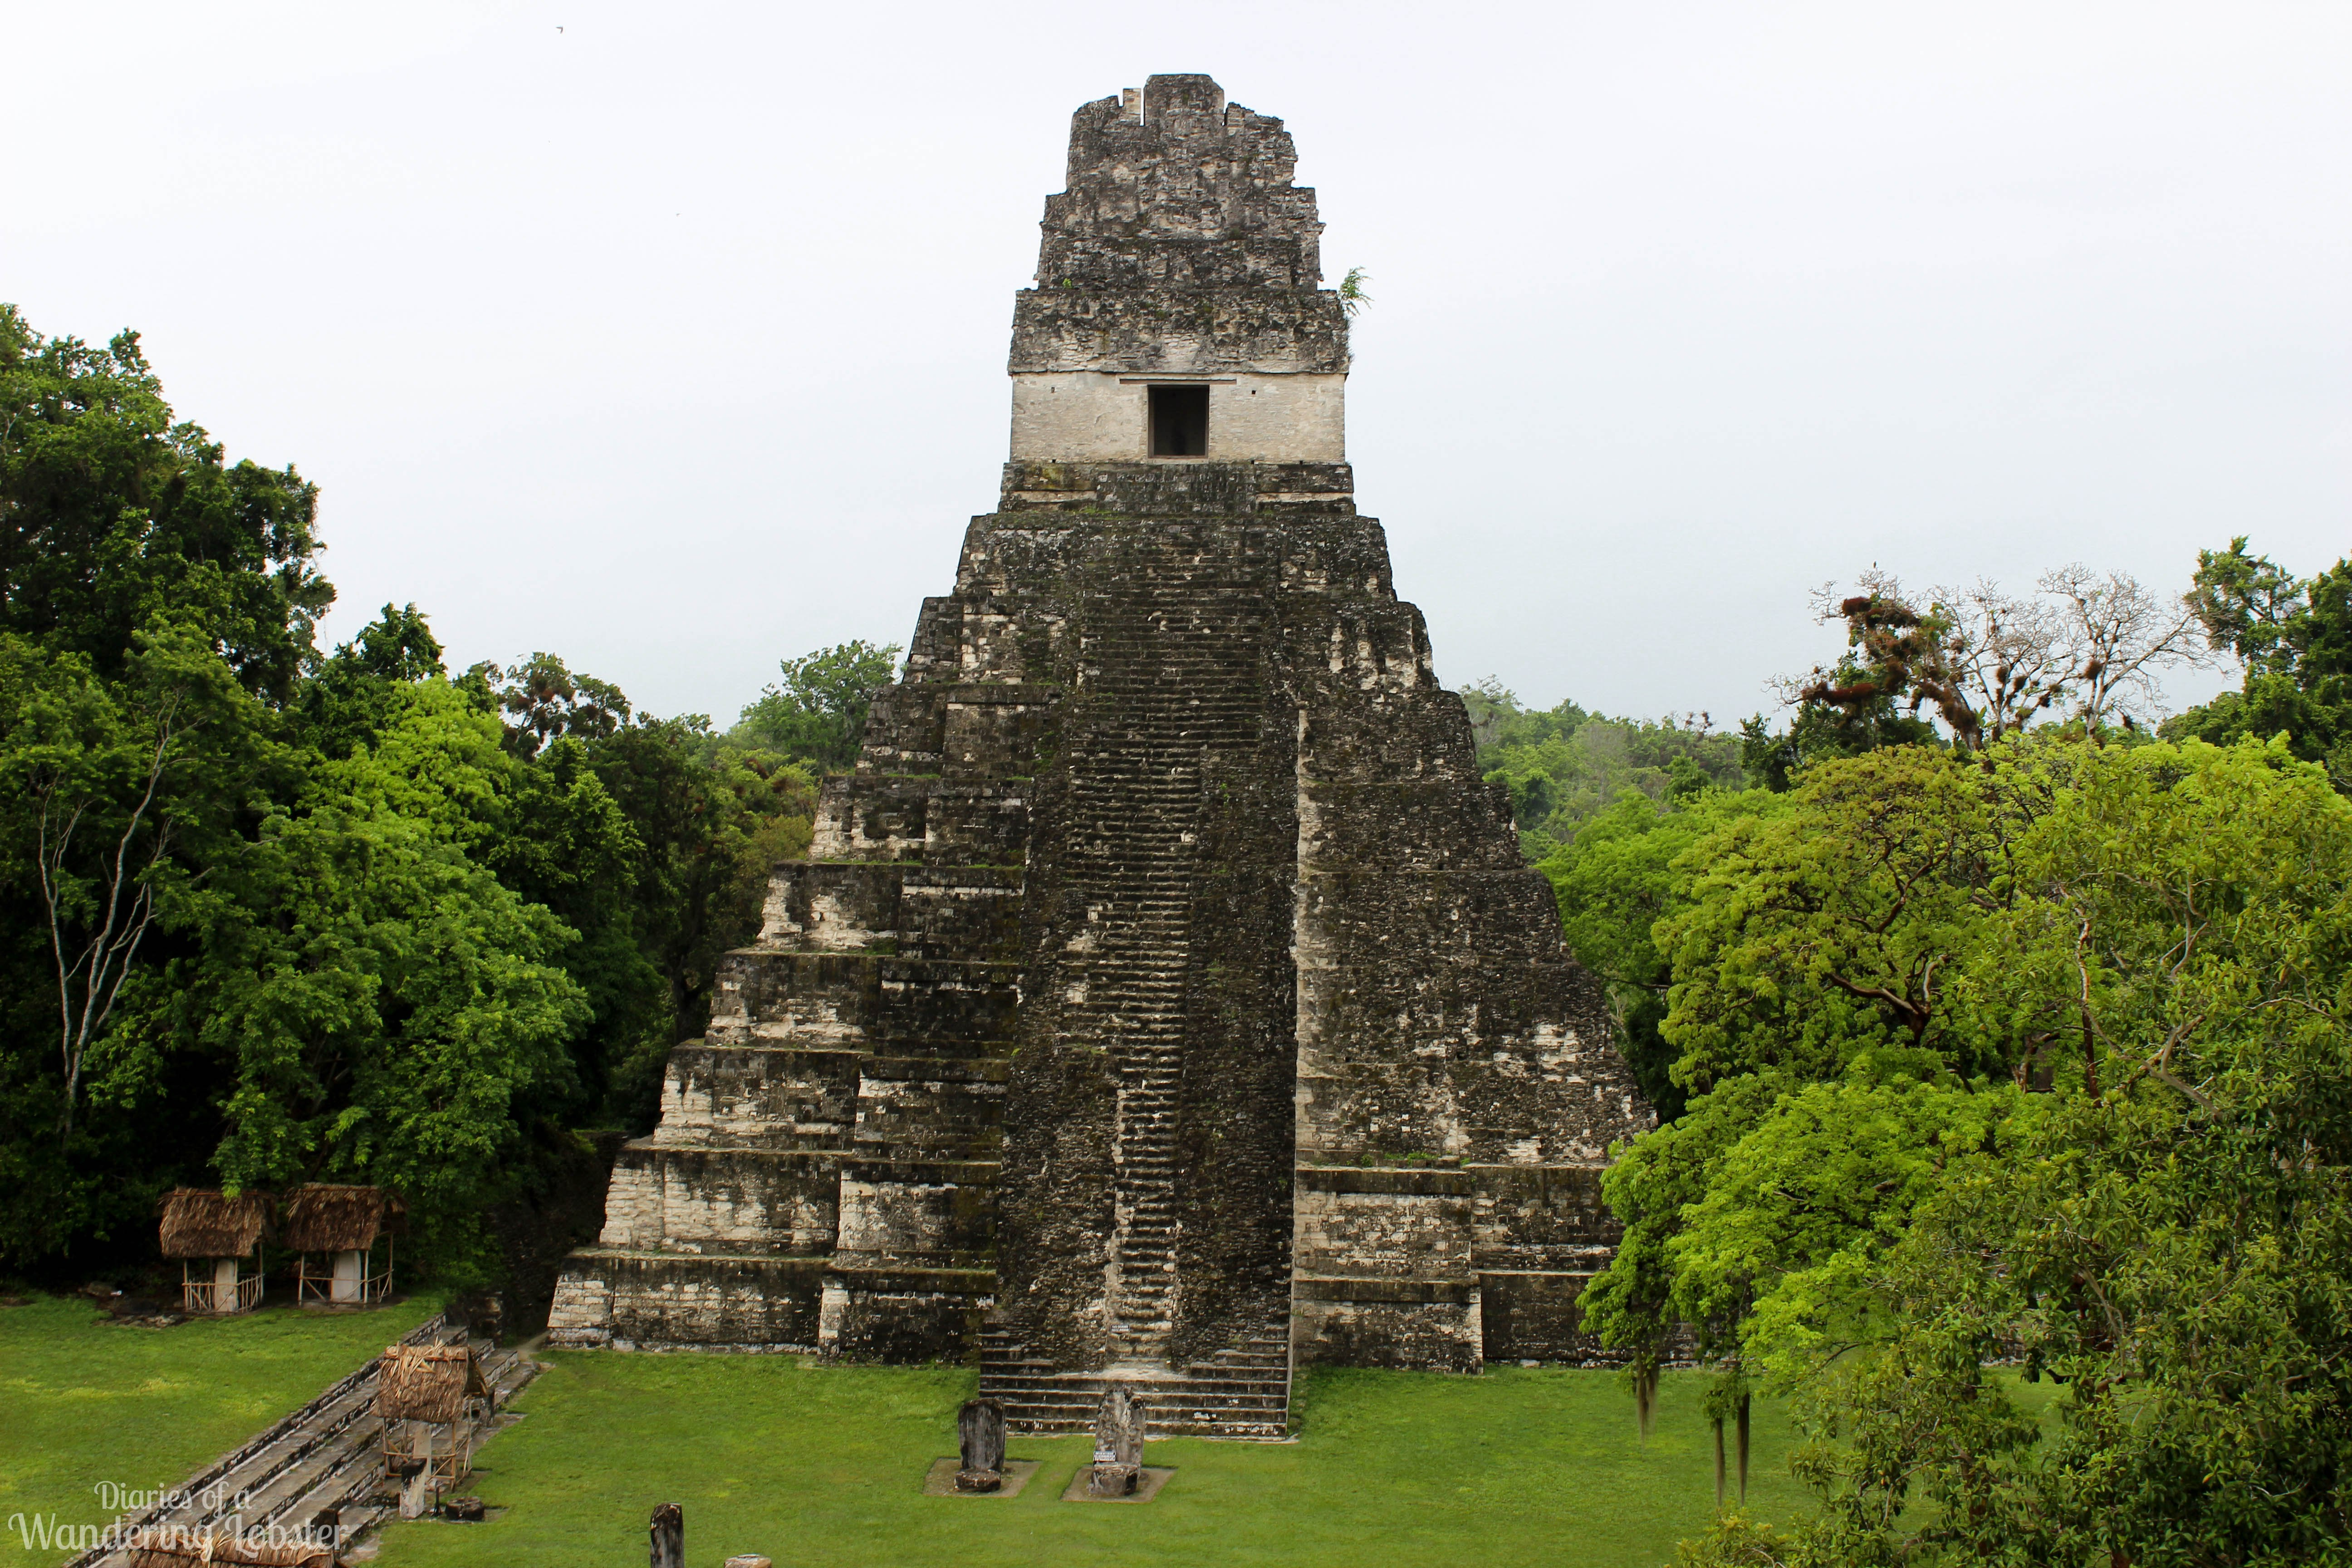 Tikal Tikal, A Quick Guide to Tikal National Park - Diaries of a Wandering Lobster